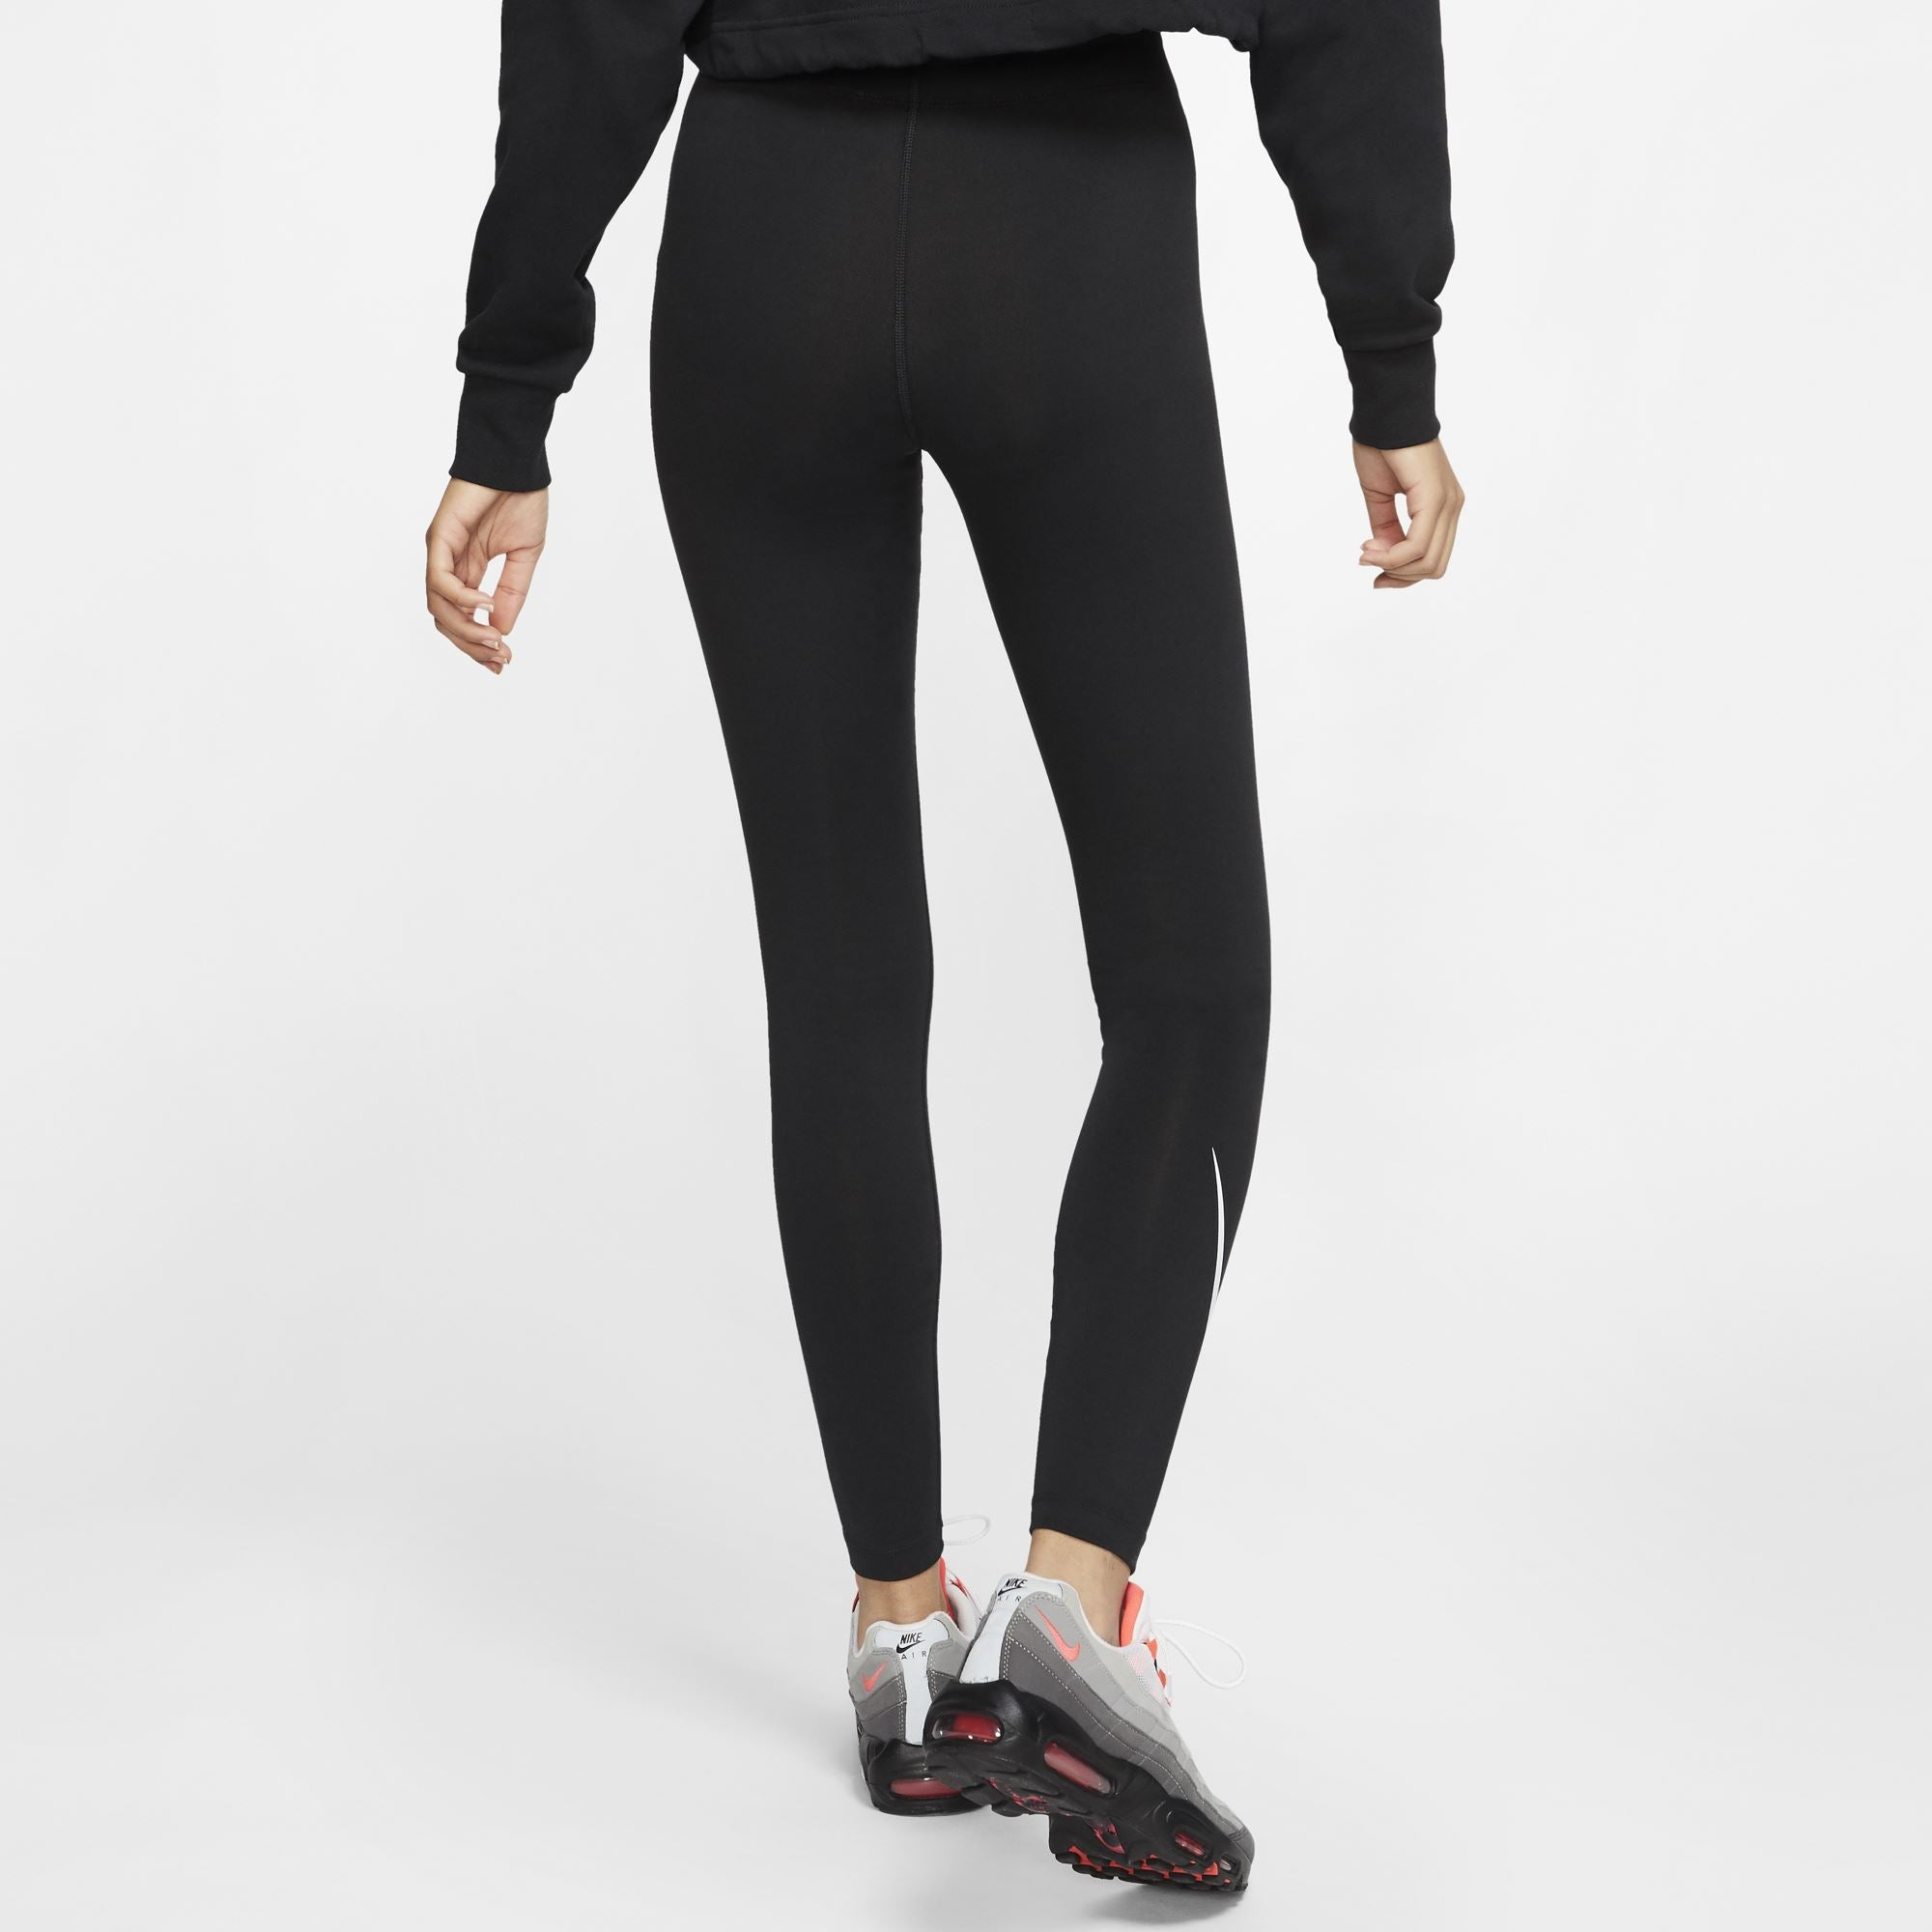 Nike Womens Sportswear Leg-A-See Swoosh Leggings SP-ApparelTights-Women Nike